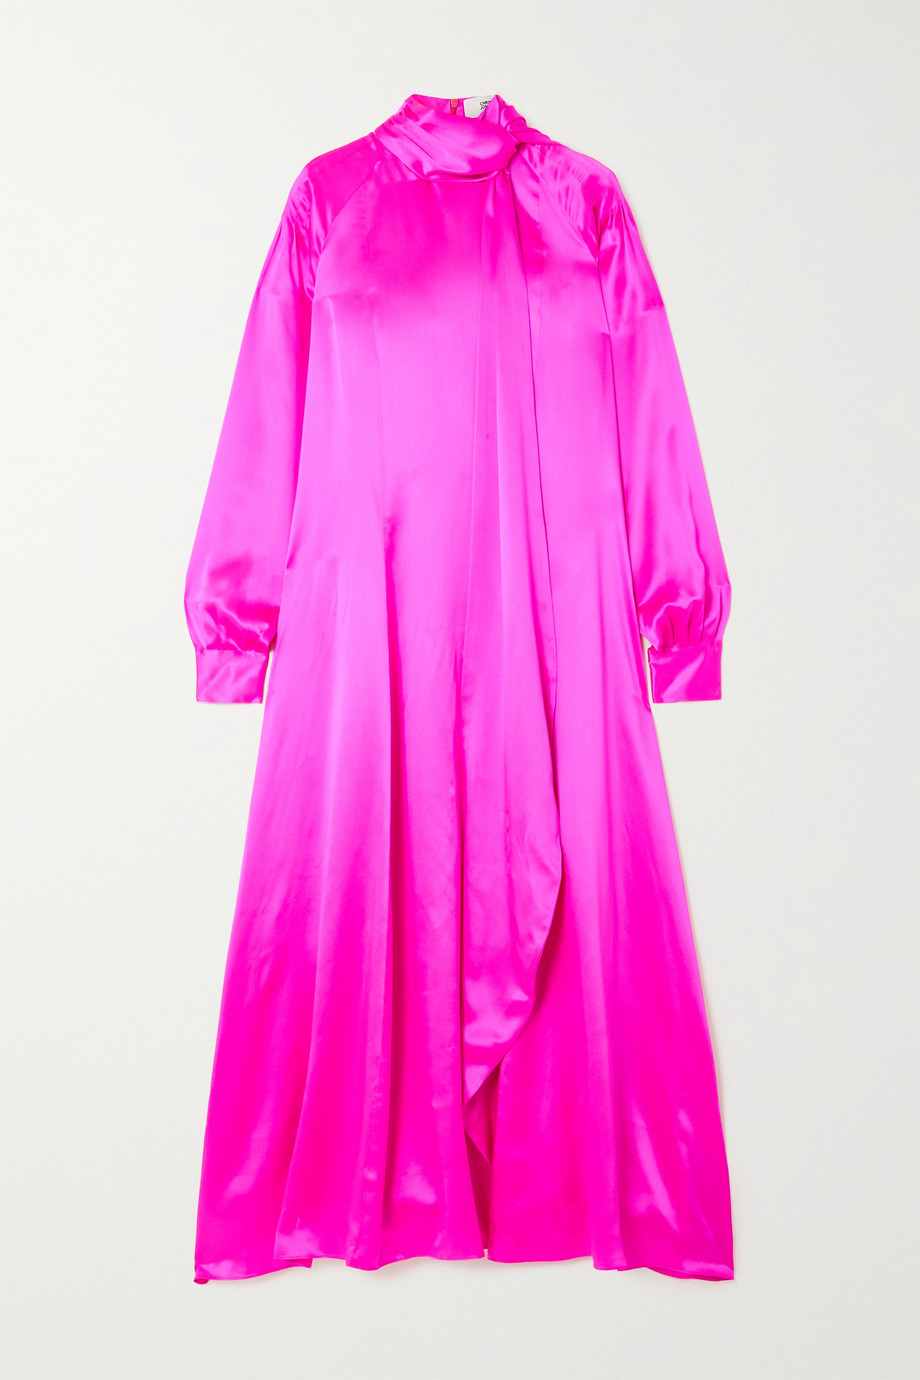 Christopher John Rogers Tie-detailed pintucked neon silk-charmeuse dress